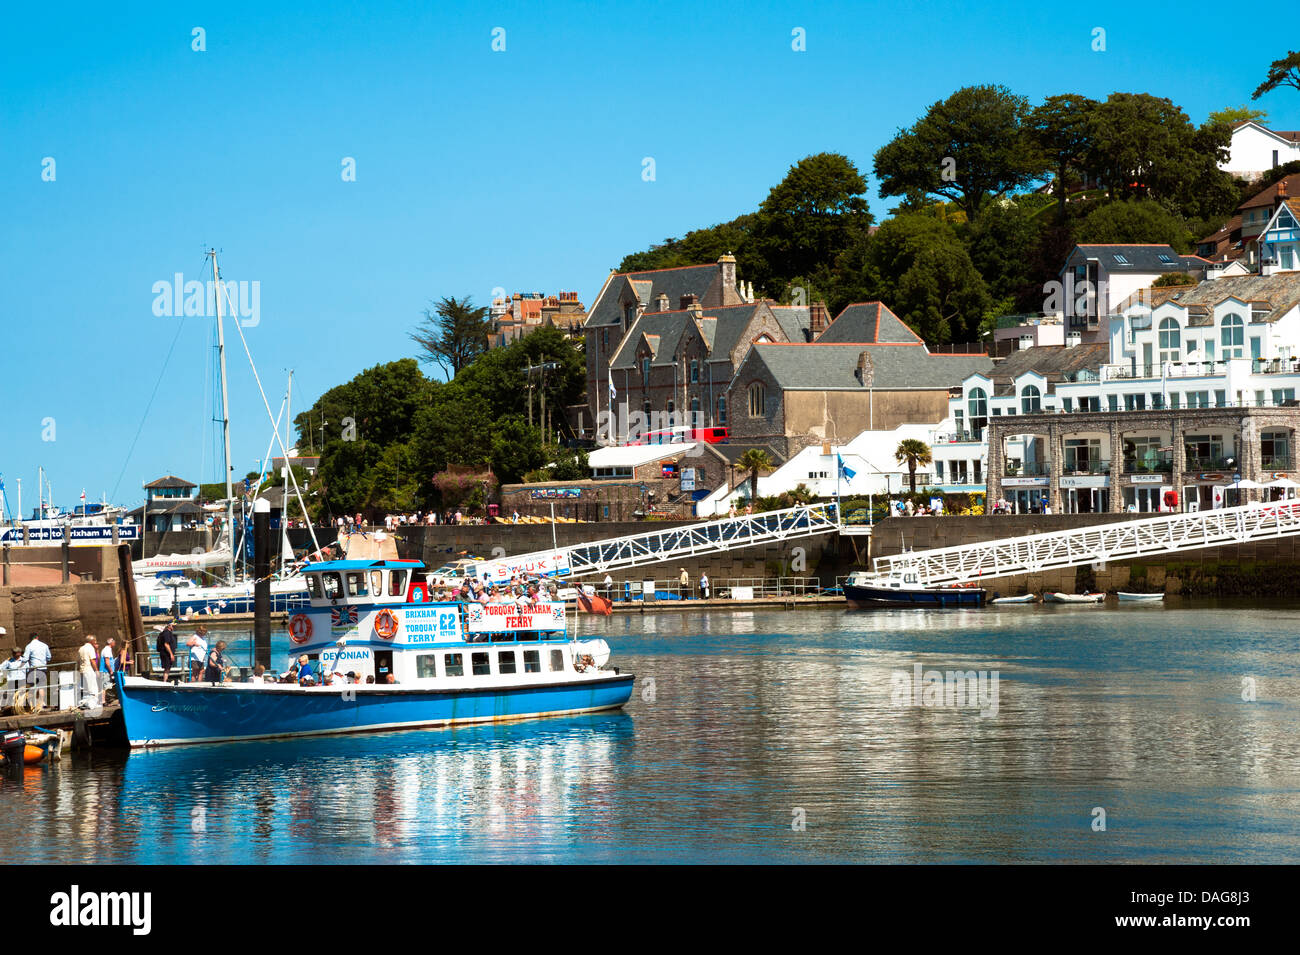 Boat trip Brixham harbour, Torbay, Devon, UK. - Stock Image